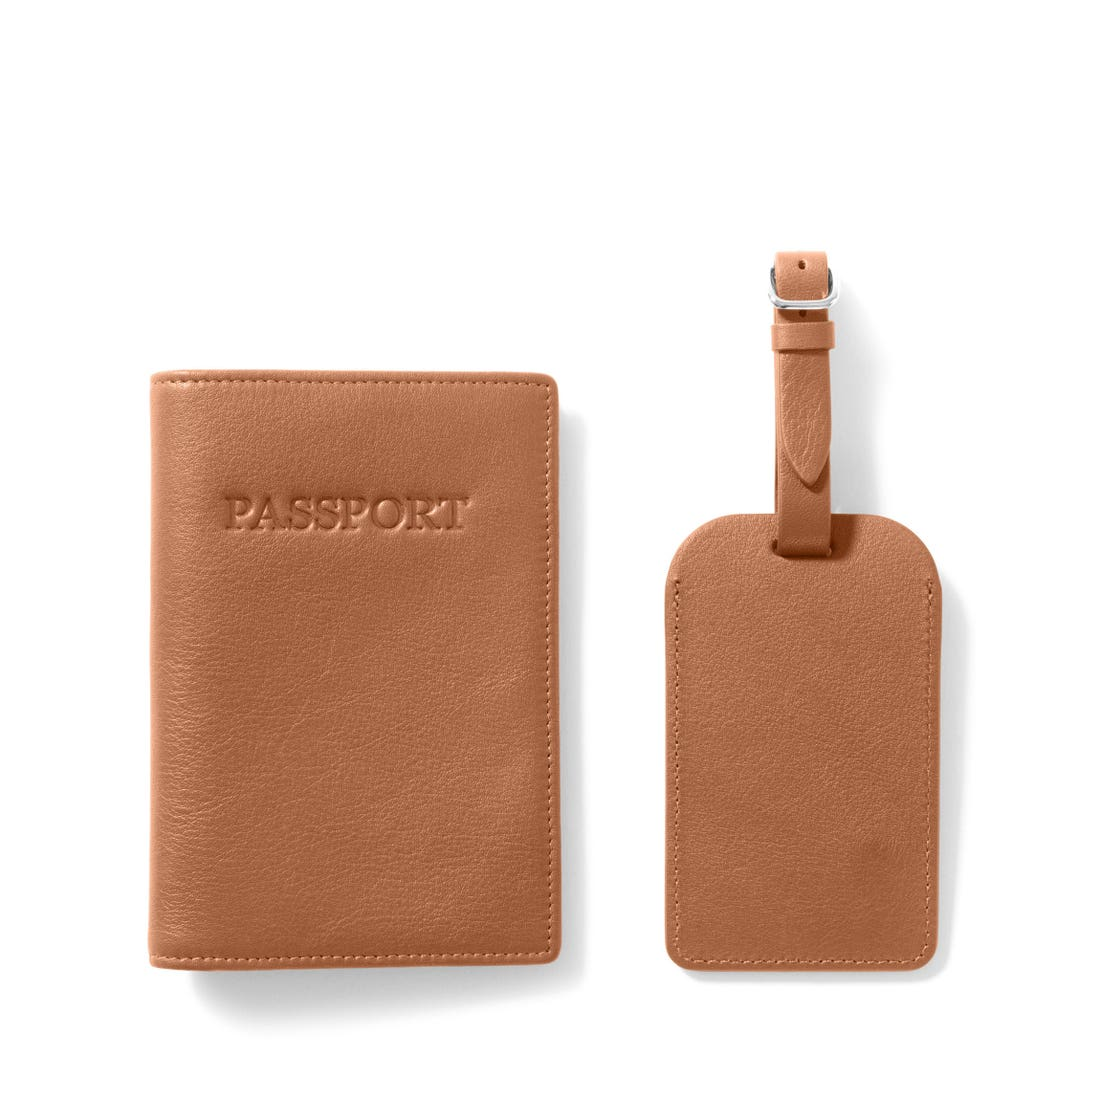 Passport Cover + Luggage Tag Set